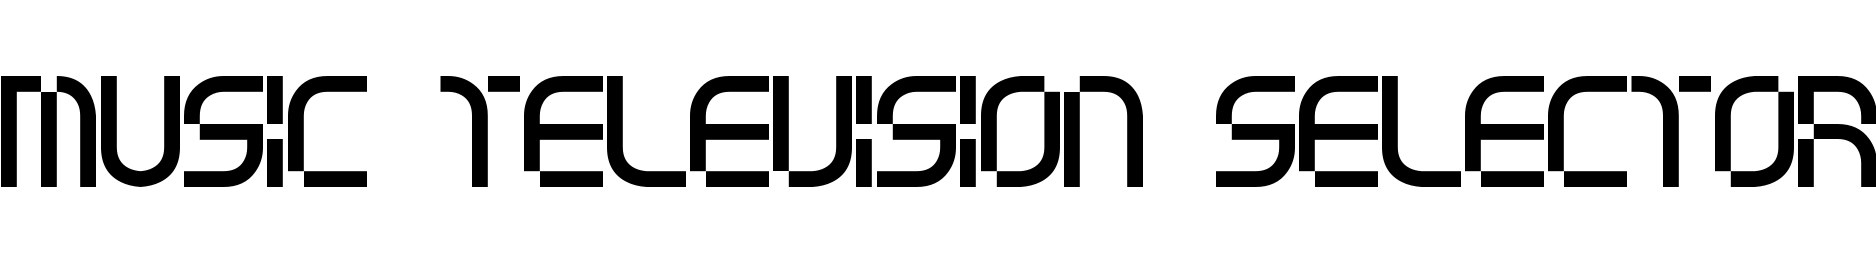 music television selector